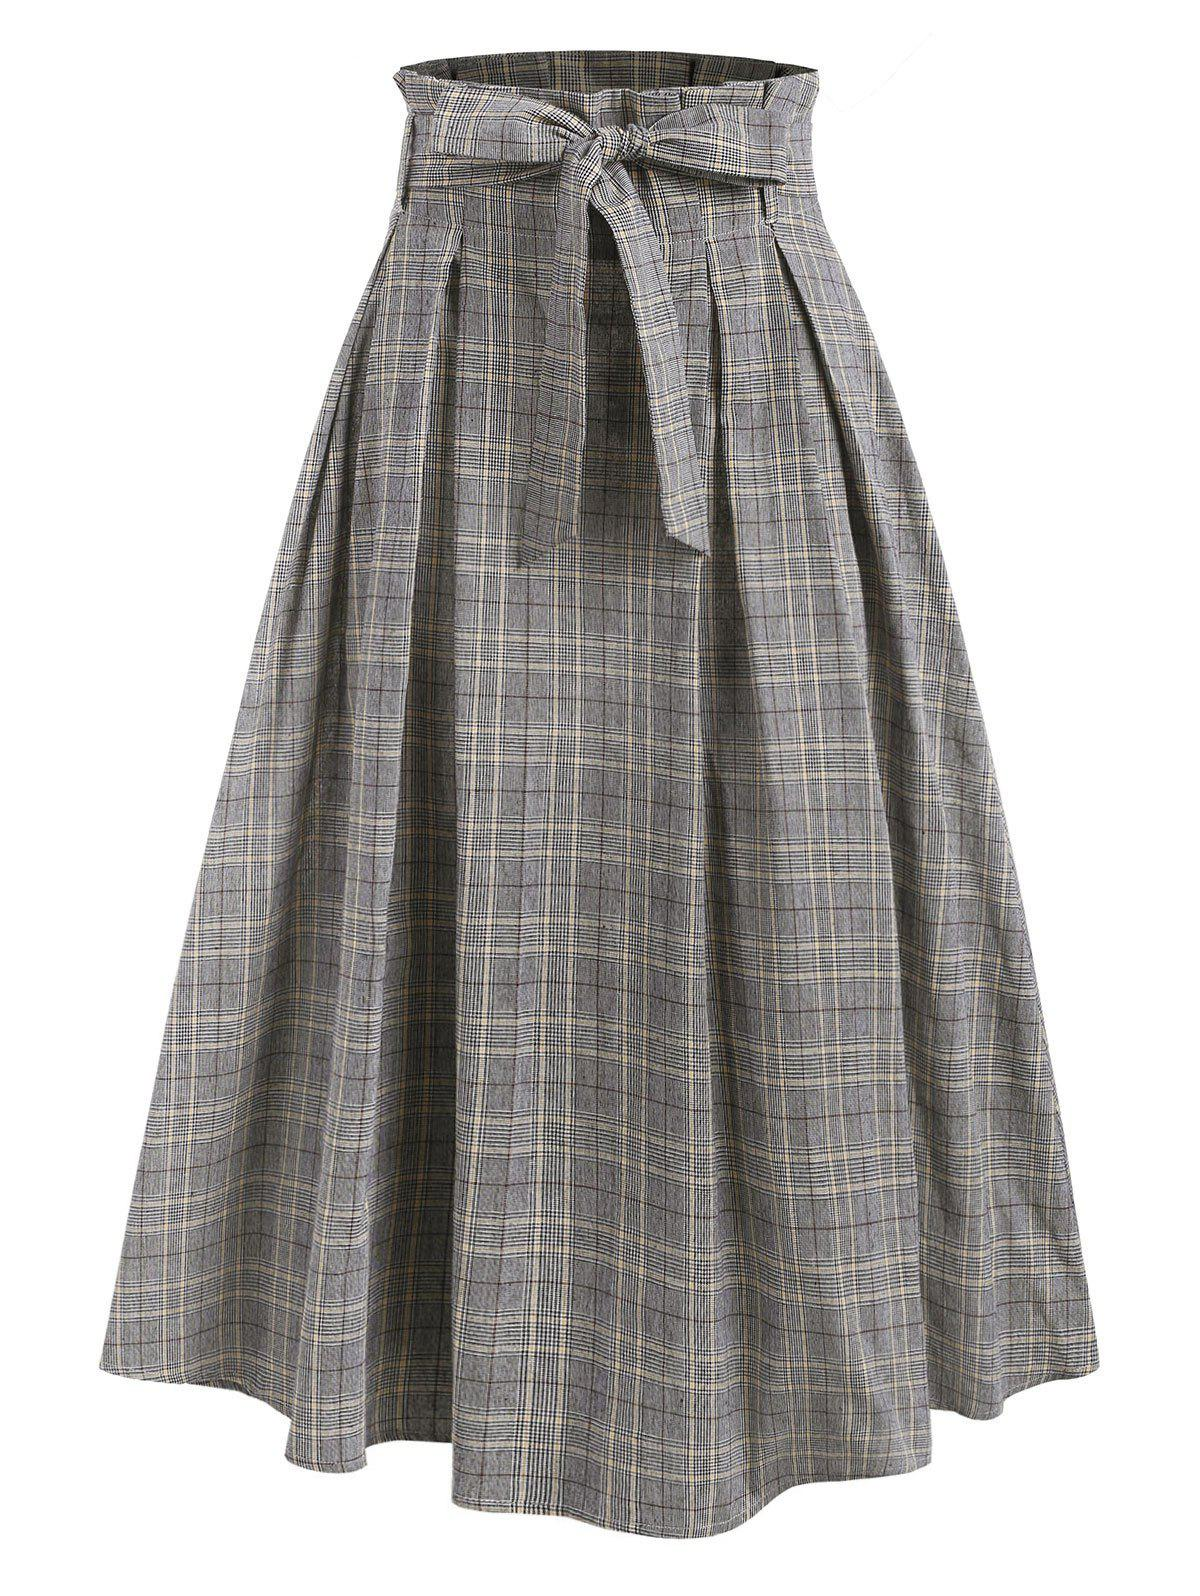 Plaid Print Belted Paperbag Skirt - GRAY M